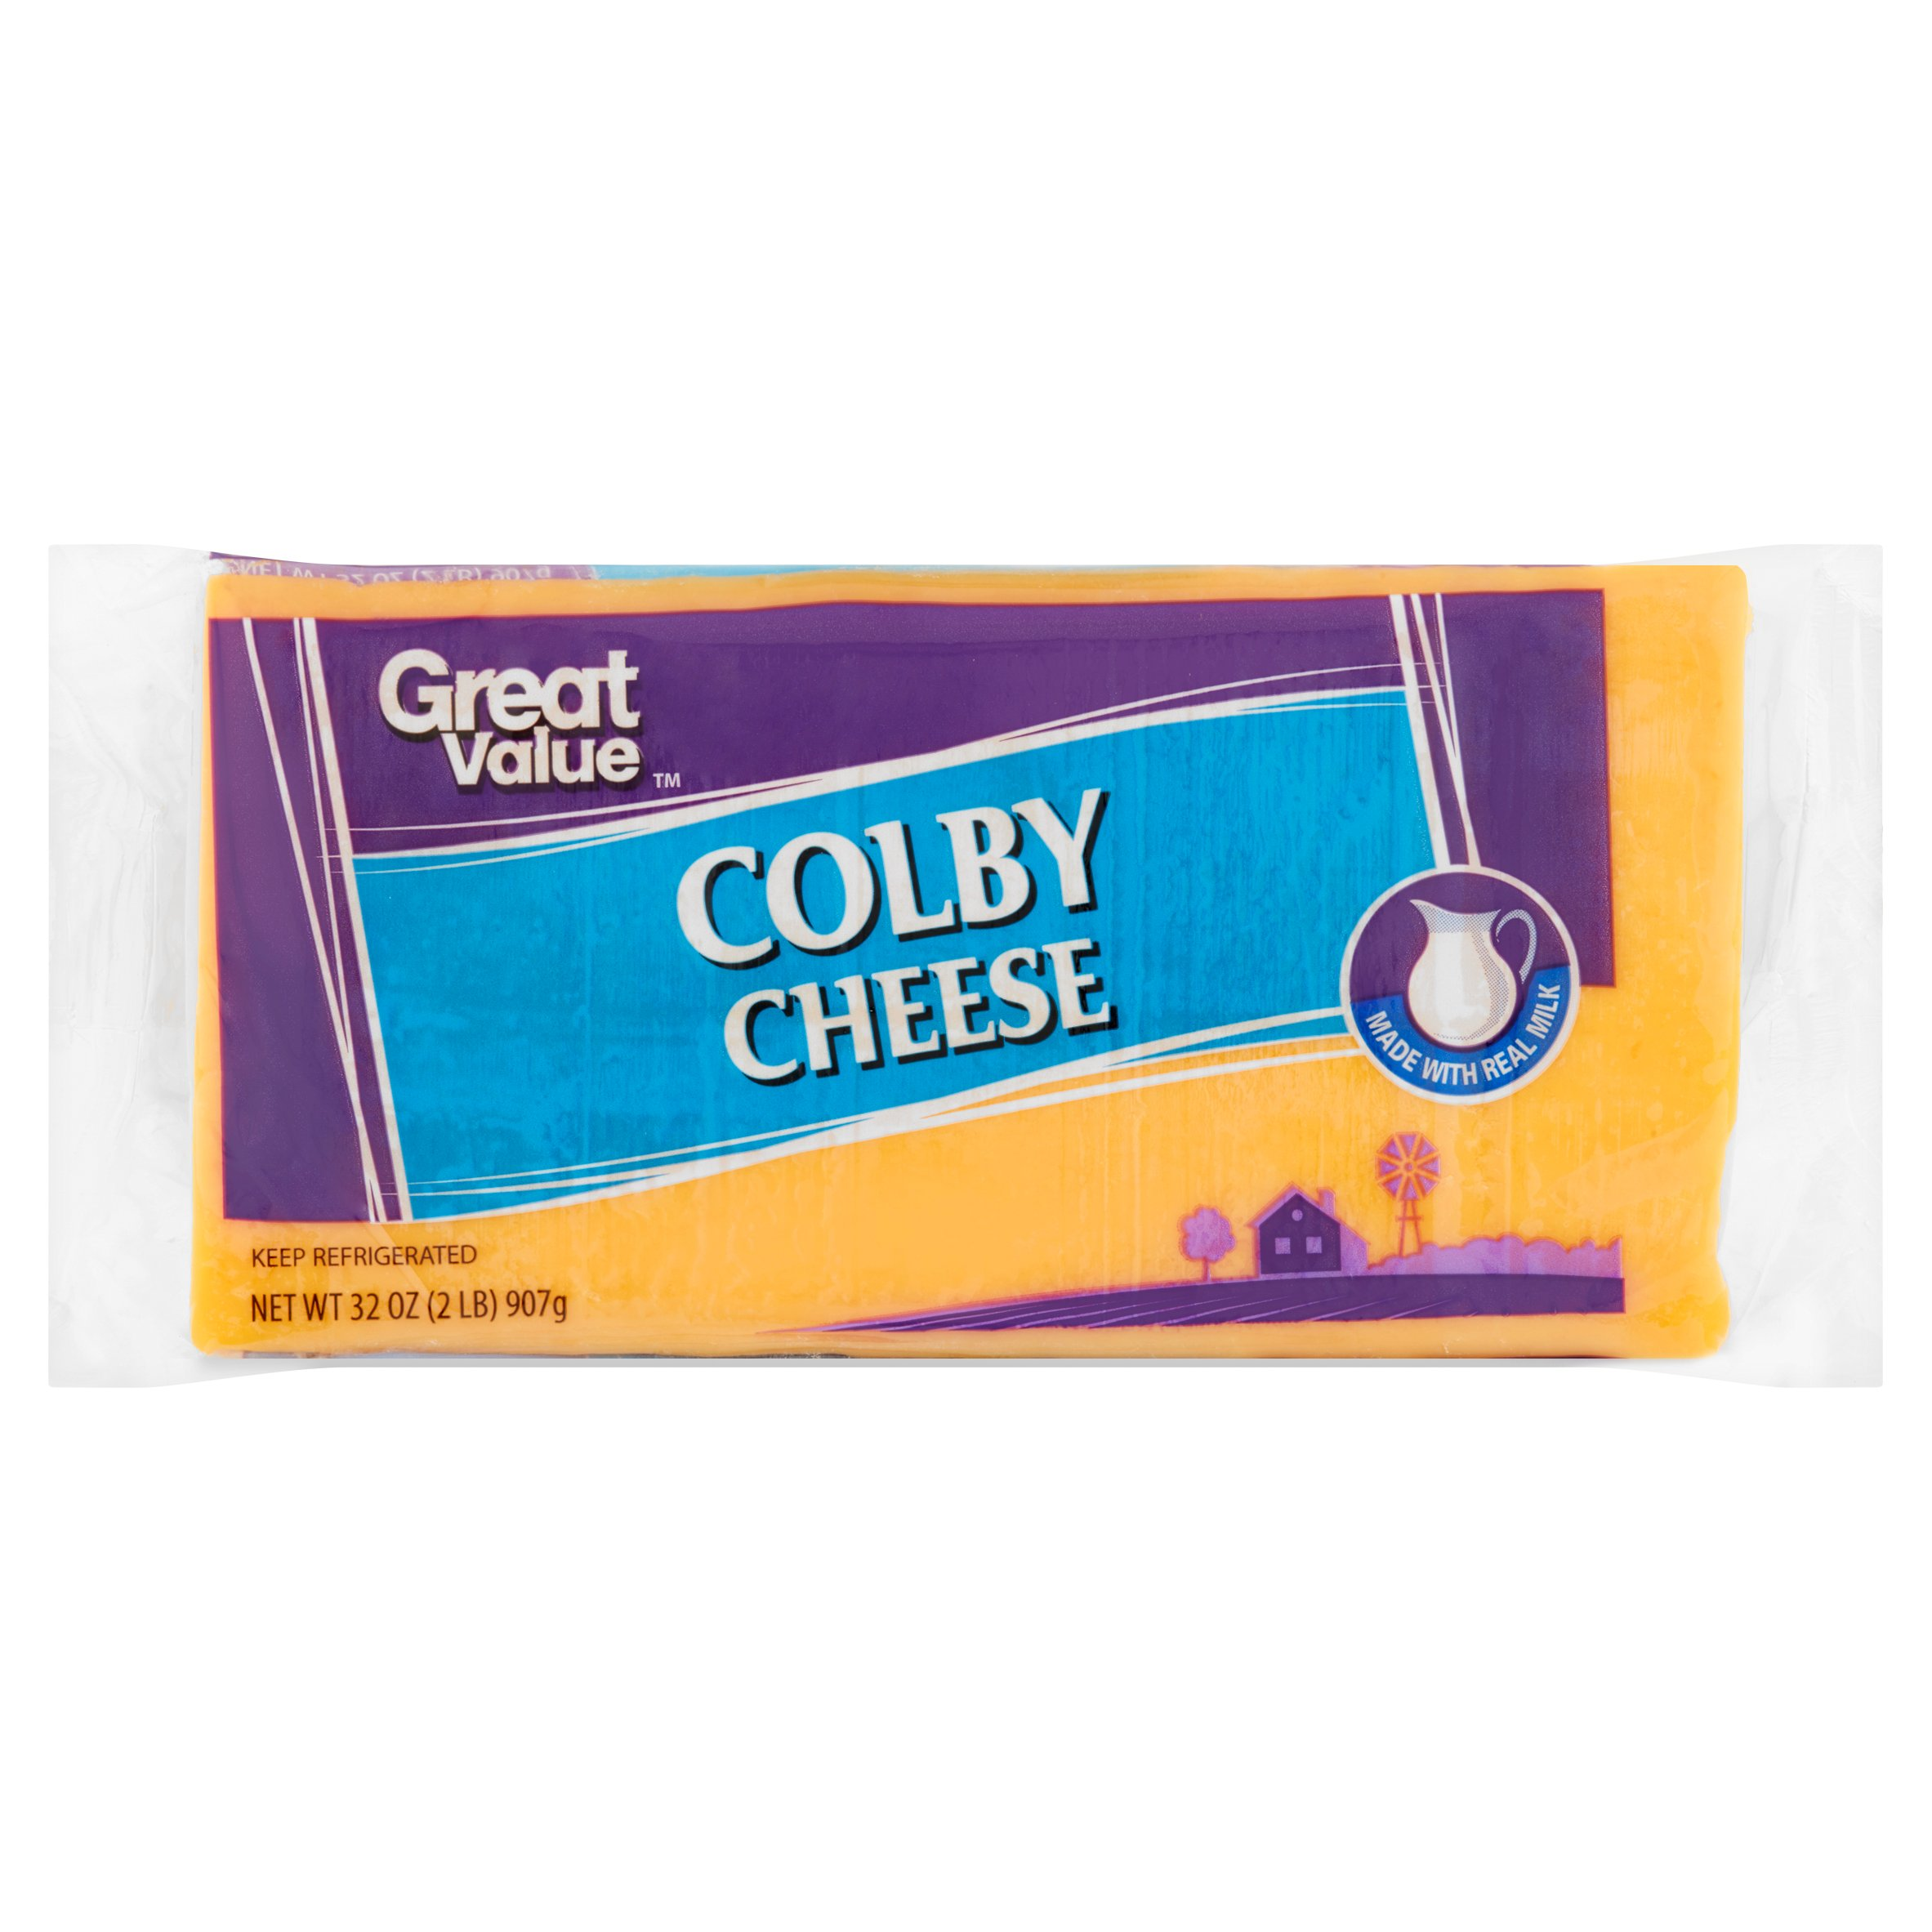 Great Value Colby Cheese, 32 oz